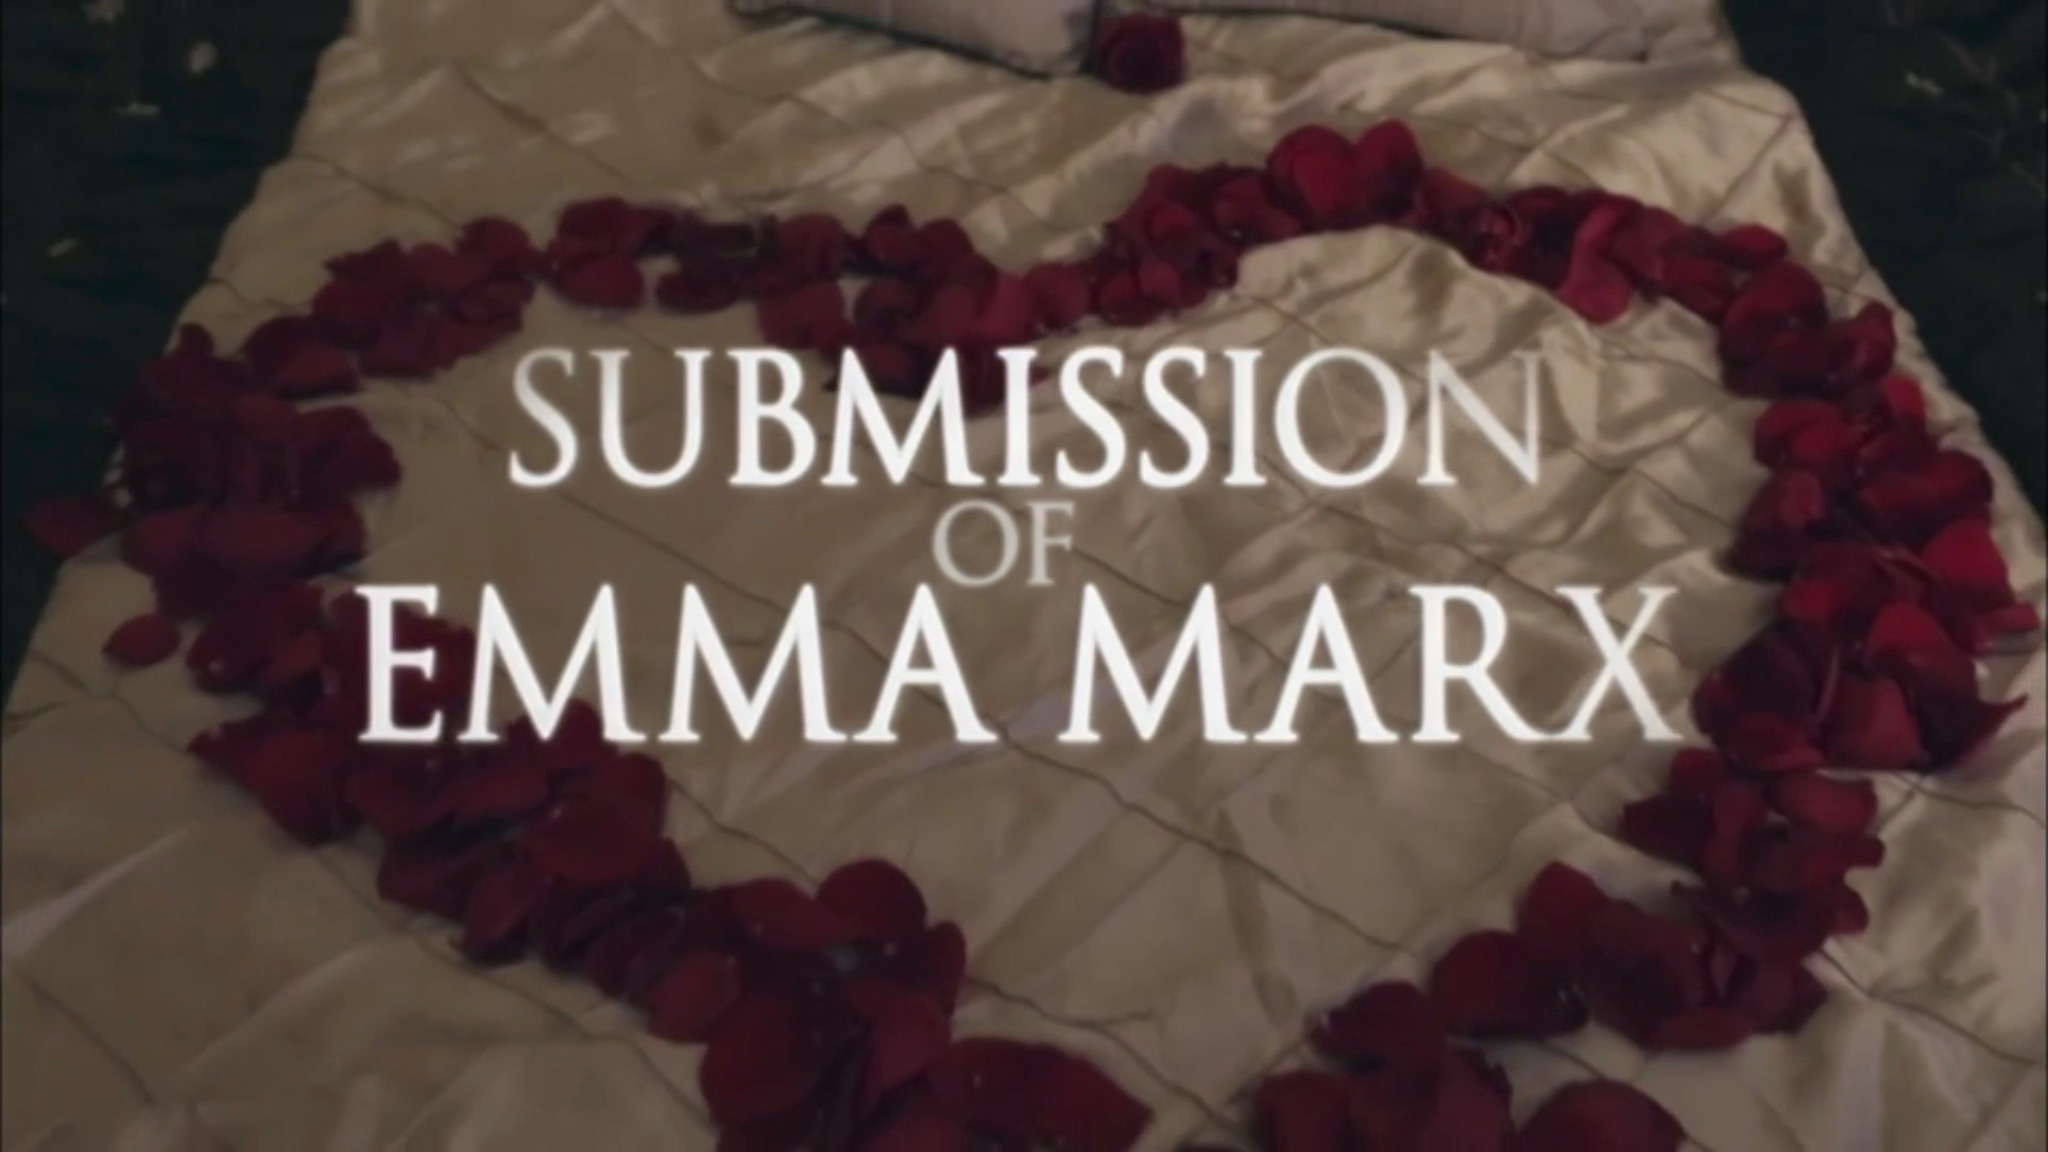 Submission of emma marx full movie